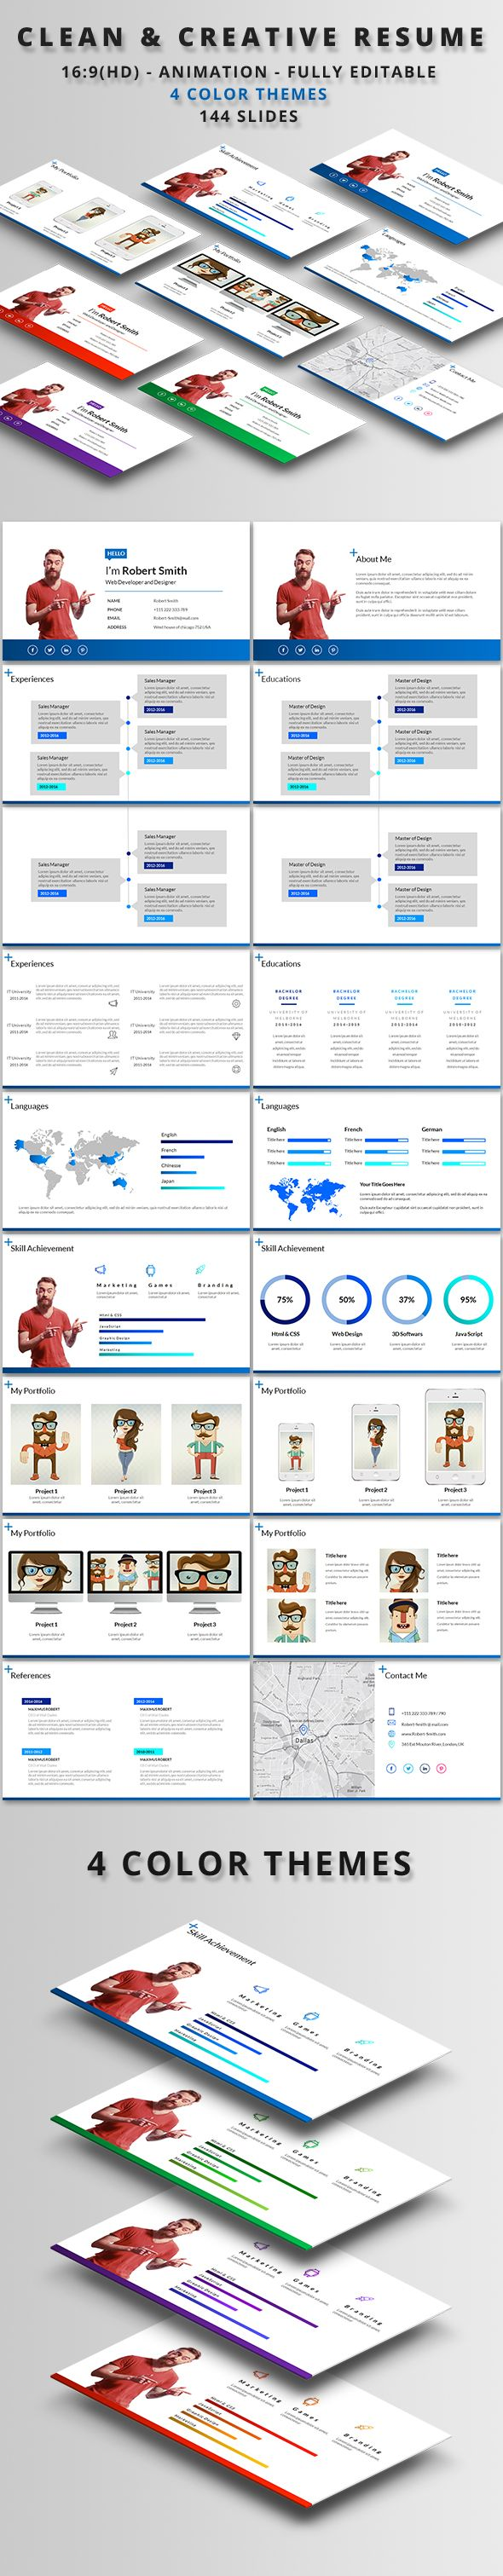 10 Best Presentation Templates Themes Images On Pinterest